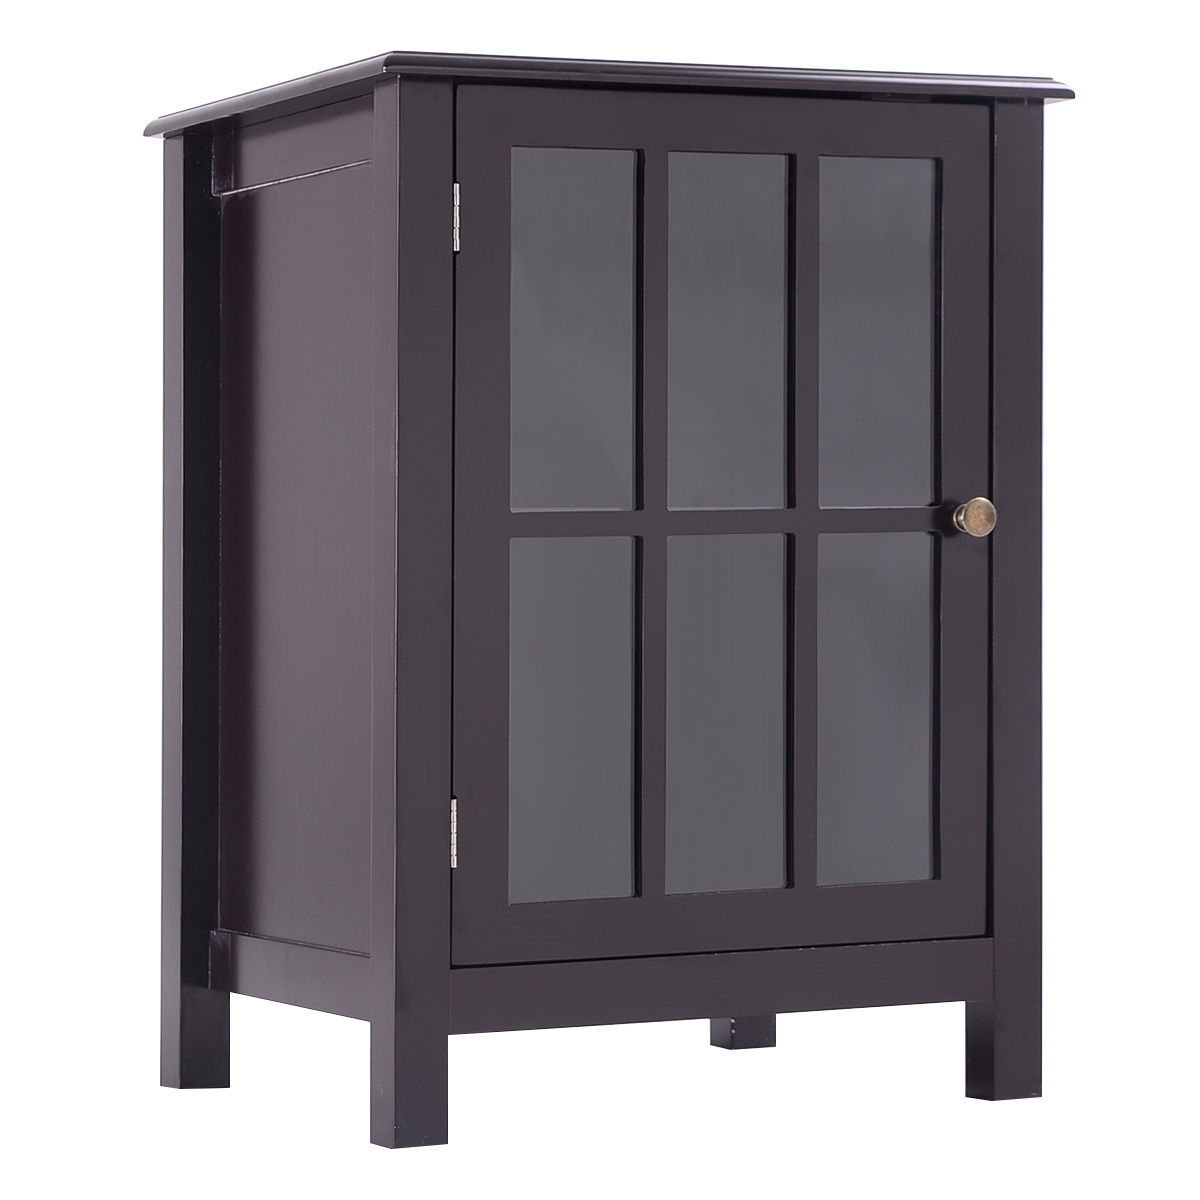 Storage Cabinets with Doors Shelf